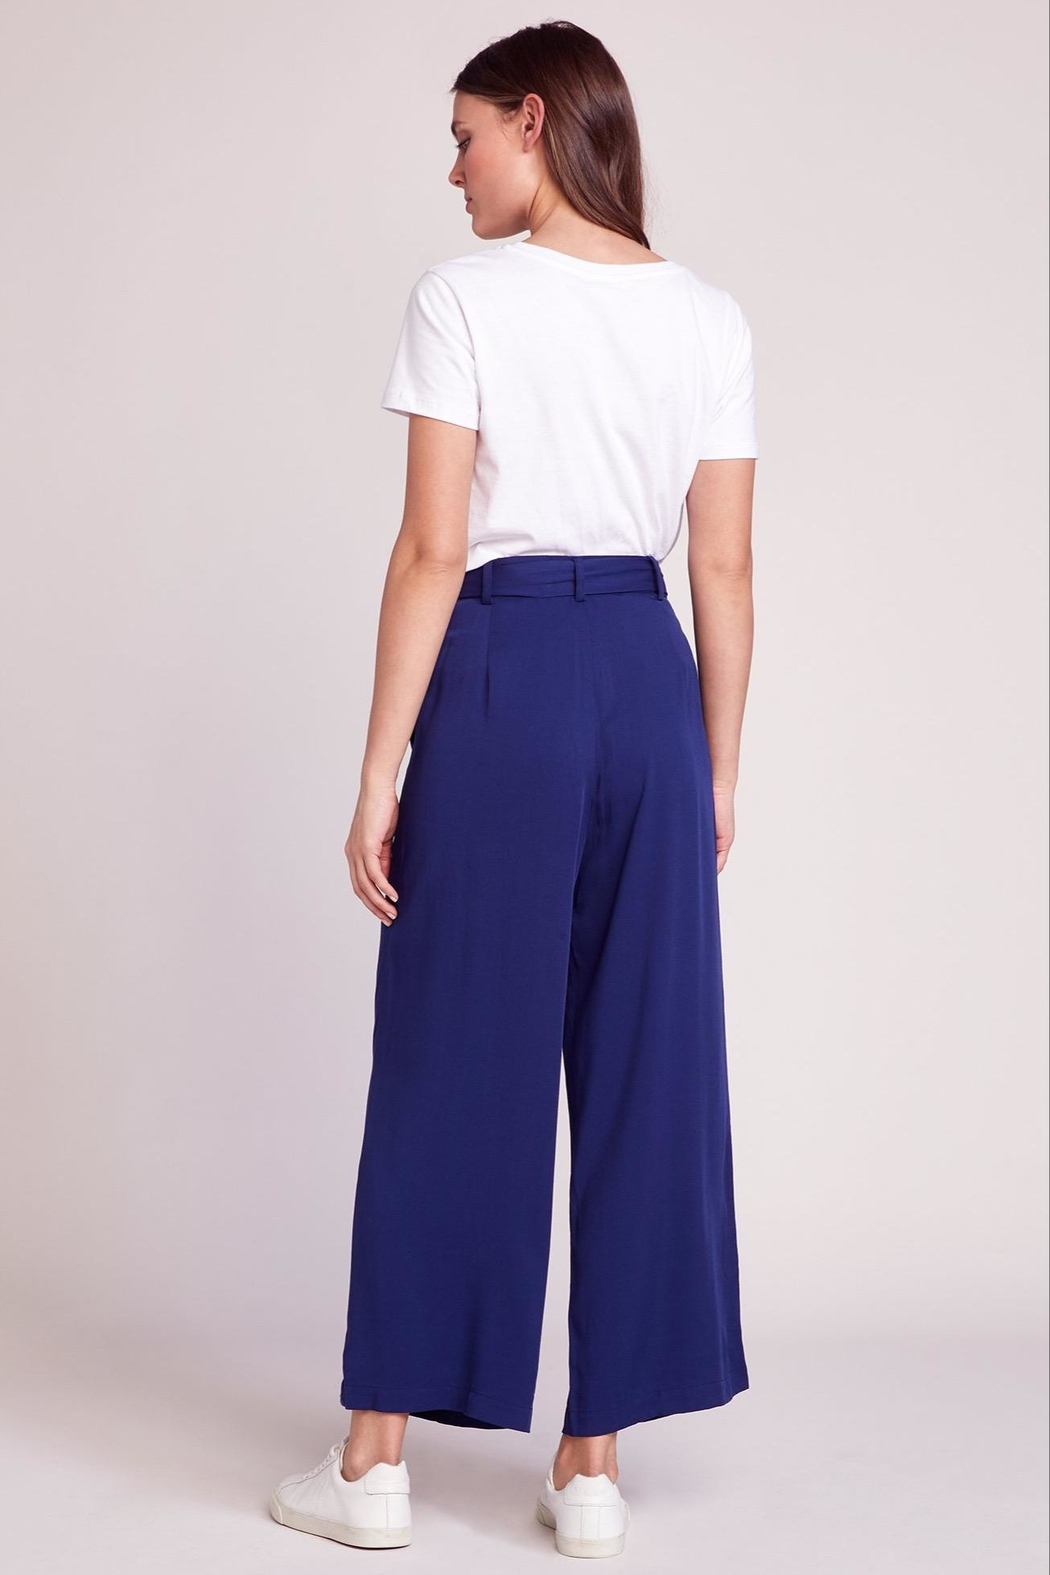 1710eda2487 BB Dakota Cropped Tie Pant from Wallingford by The Dressing Room ...